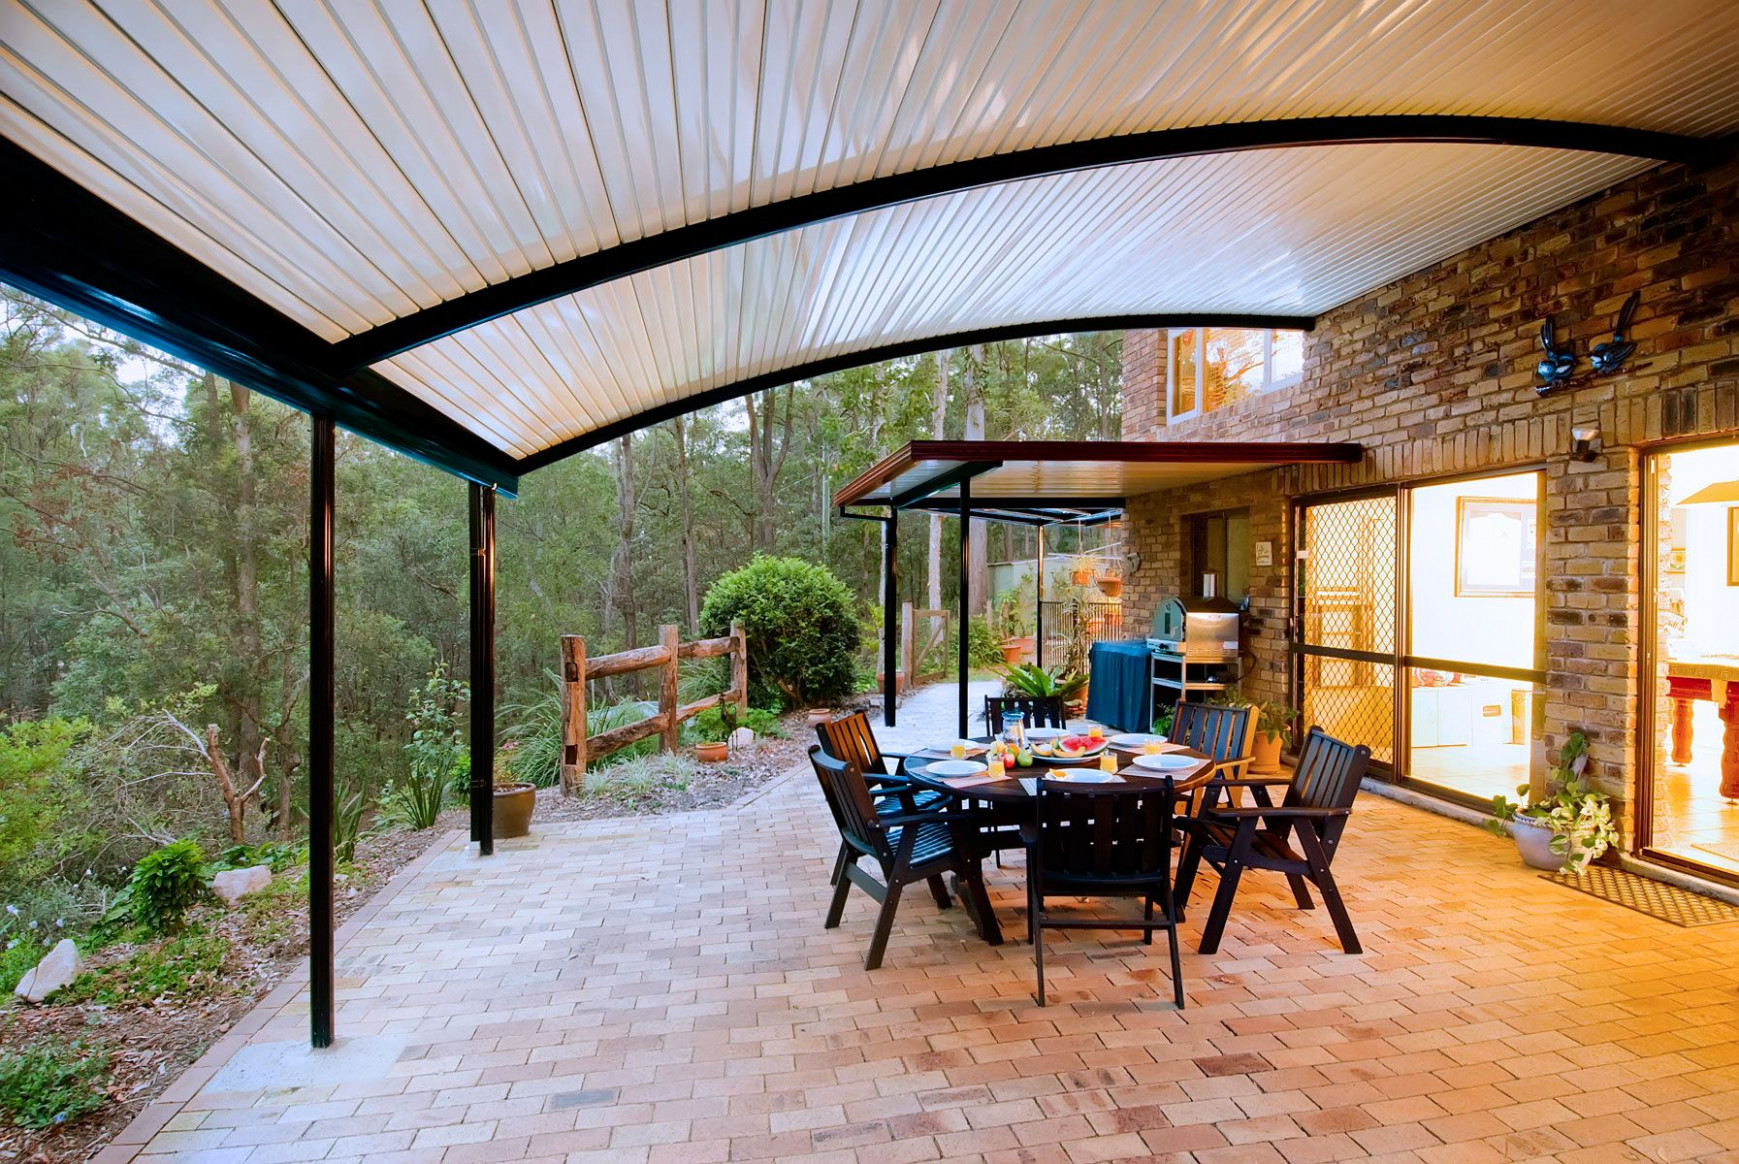 The Stratco Outback Curved Roof Patio Is A Unique, Sleek ..